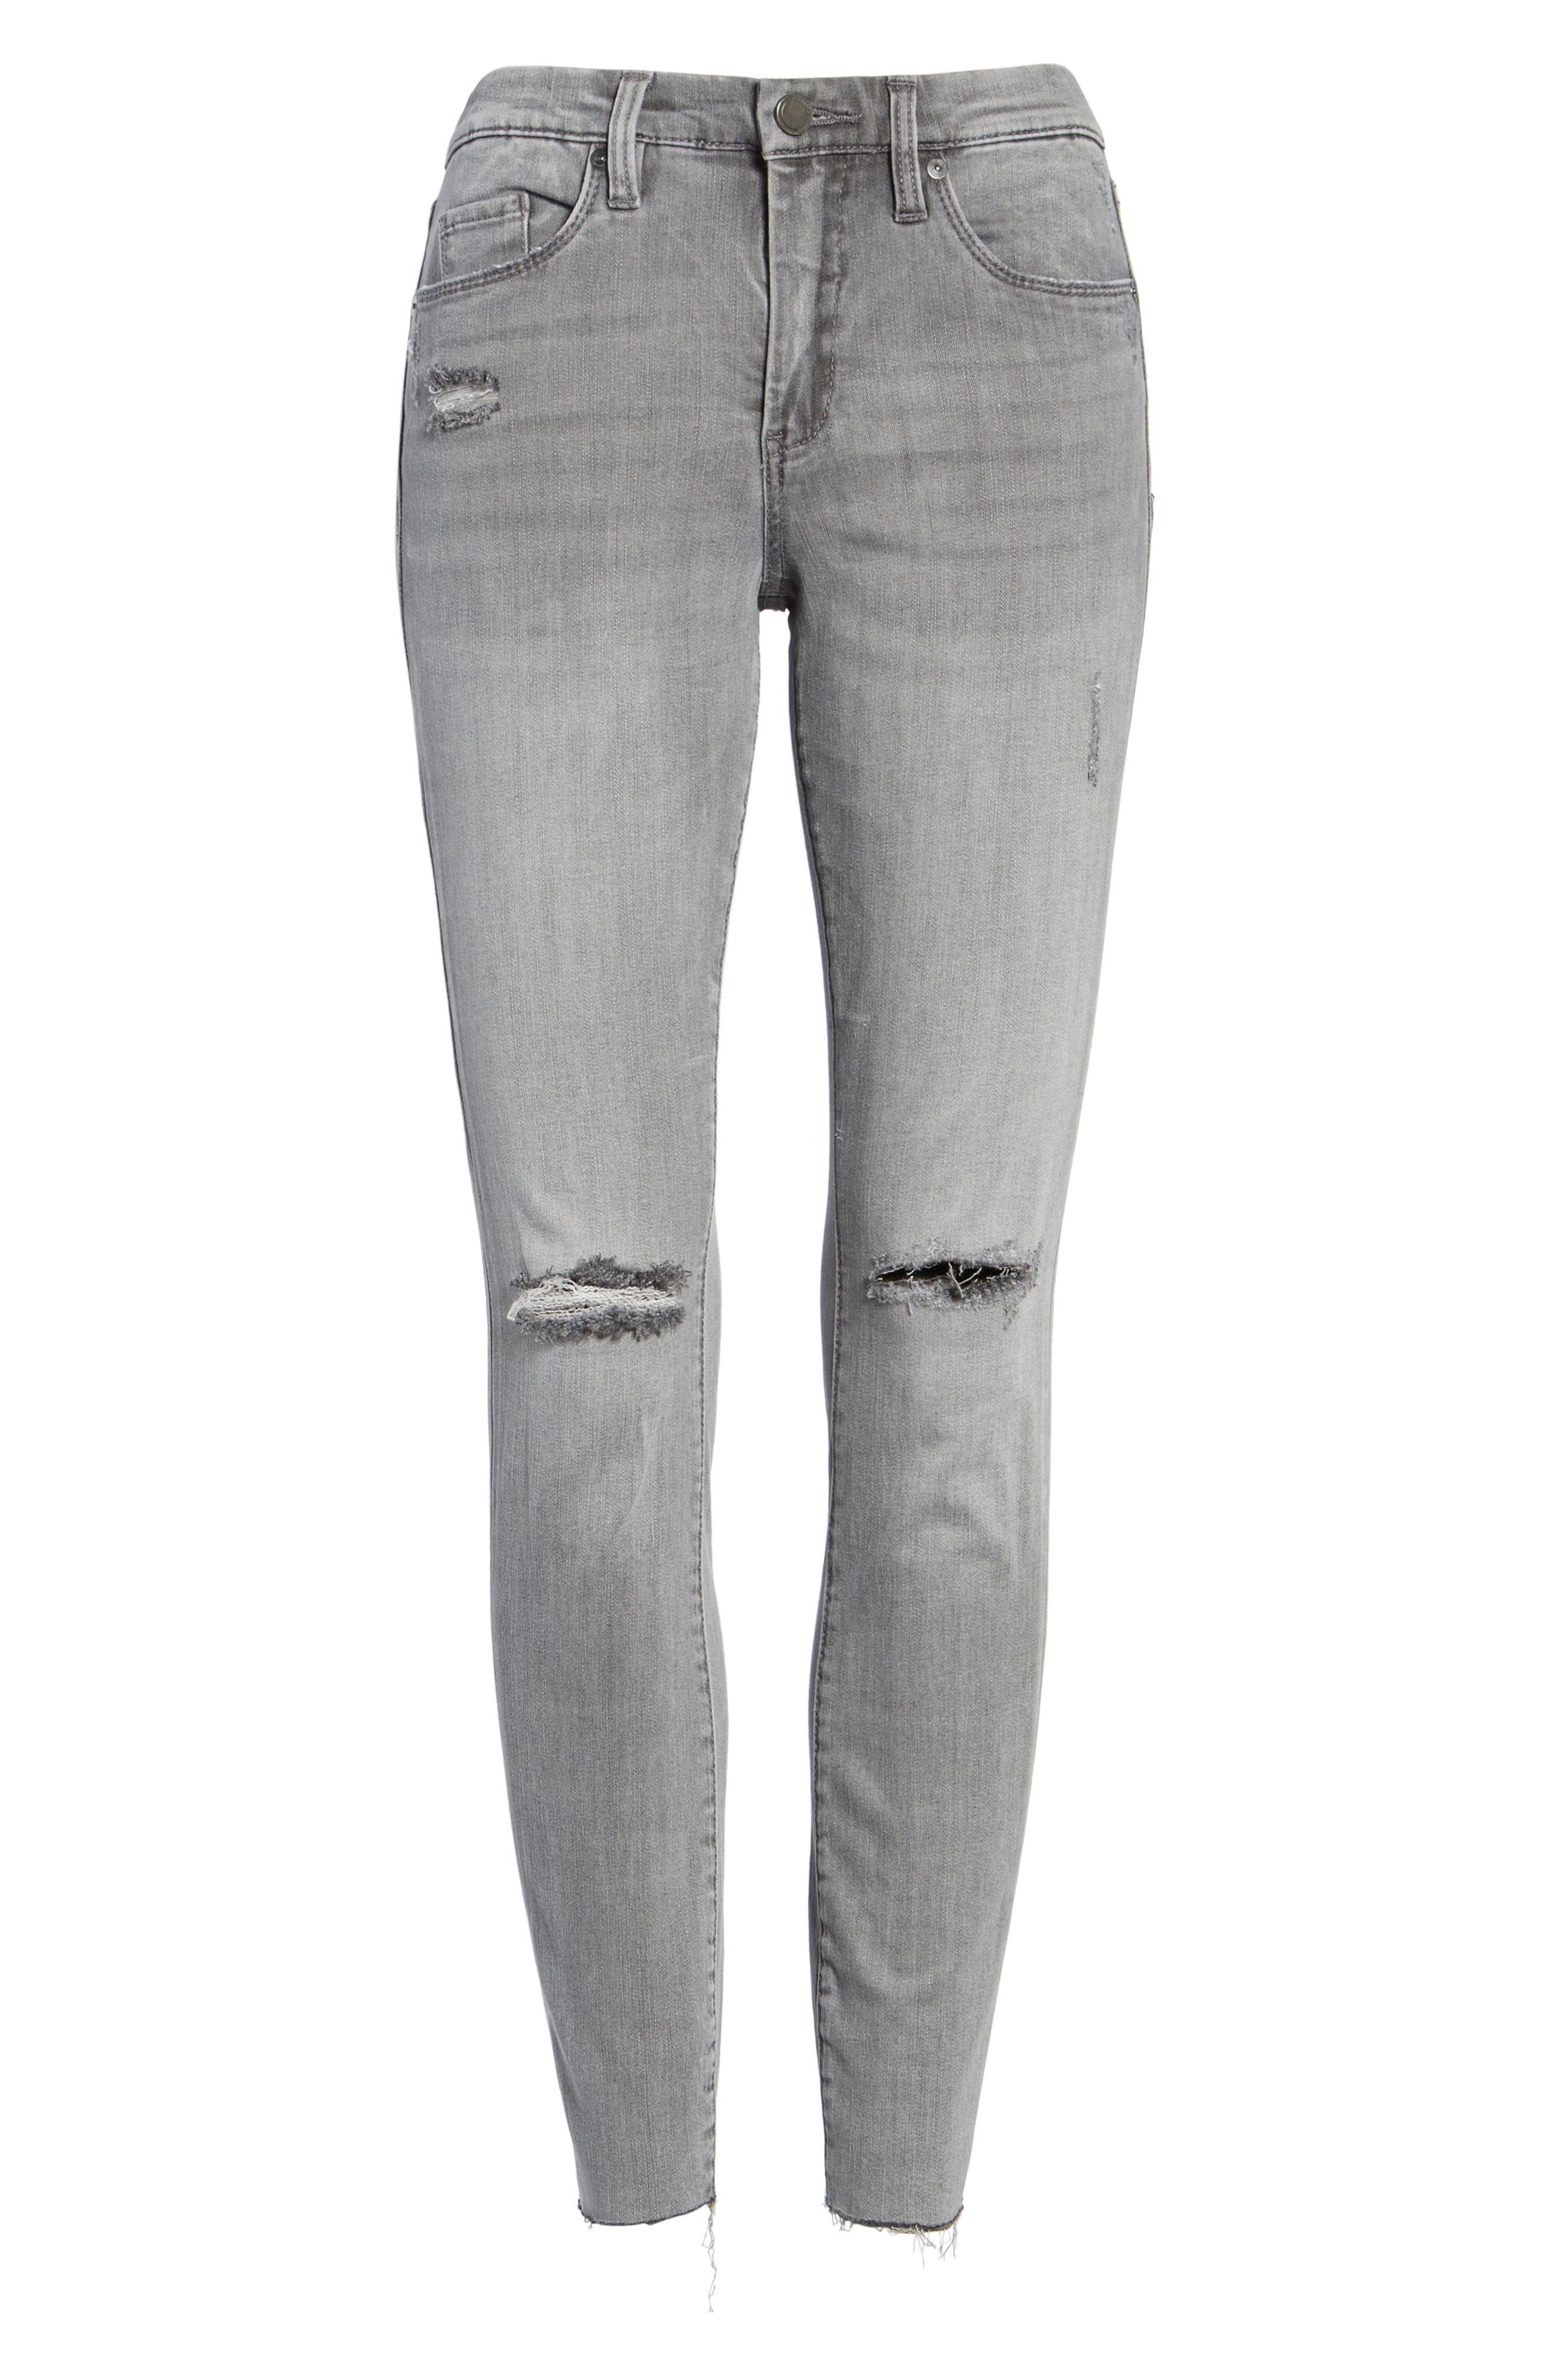 Tequila Royale Skinny Jeans,                             Alternate thumbnail 6, color,